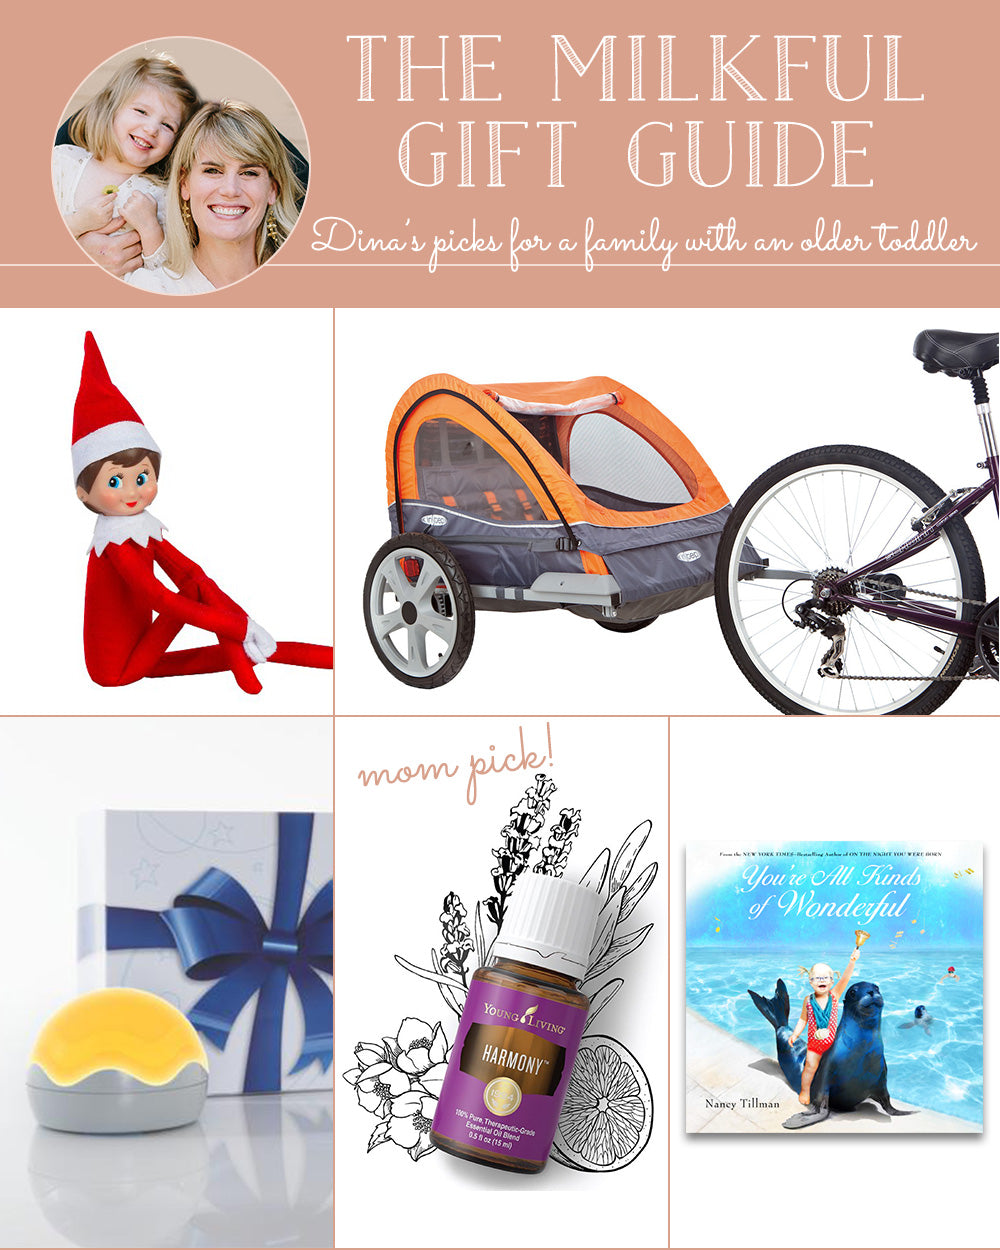 The Milkful Gift Guide for a Family with an Older Toddler